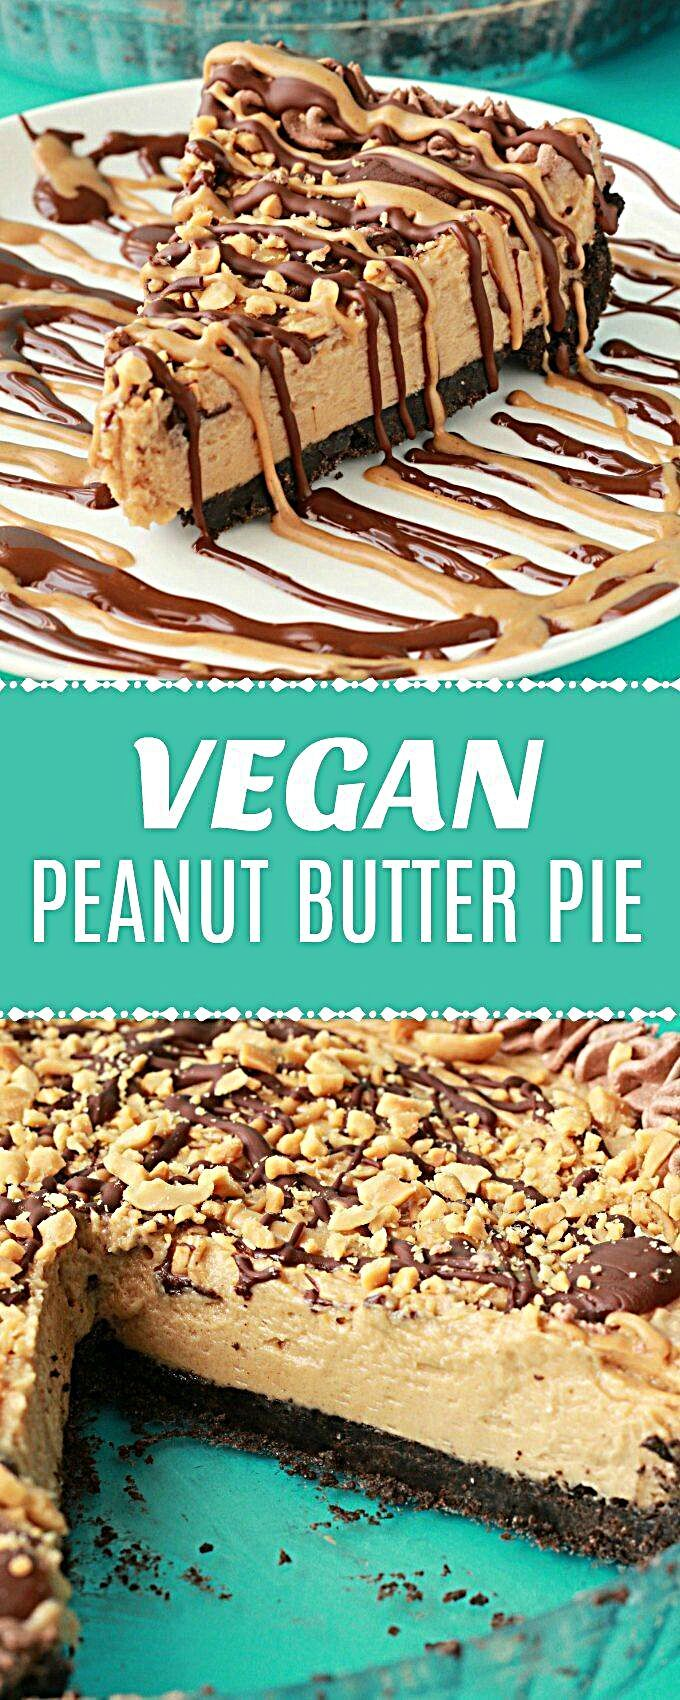 Vegan Peanut Butter Pie. Purely irresistible no-bake vegan pie with an oreo cookie